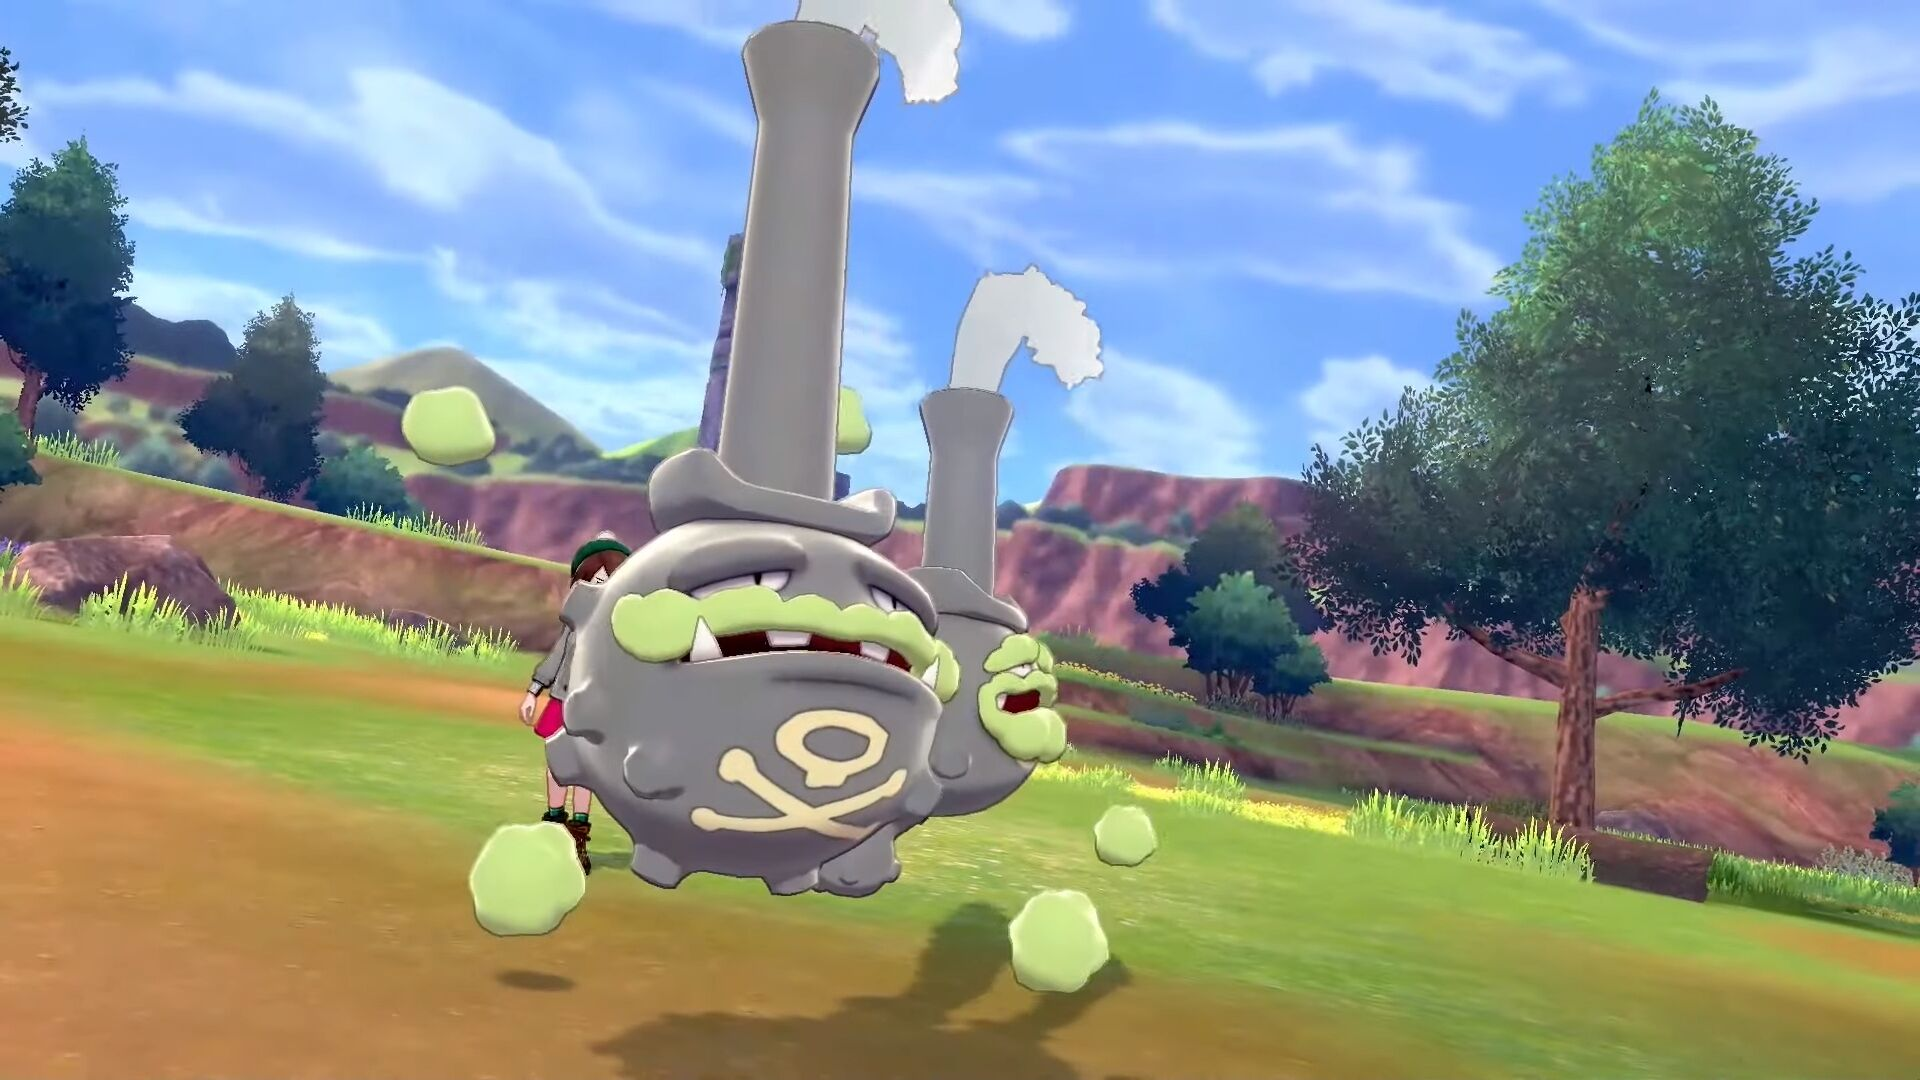 Pokémon Sword and Shield: 10 Galarian form Pokémon we want